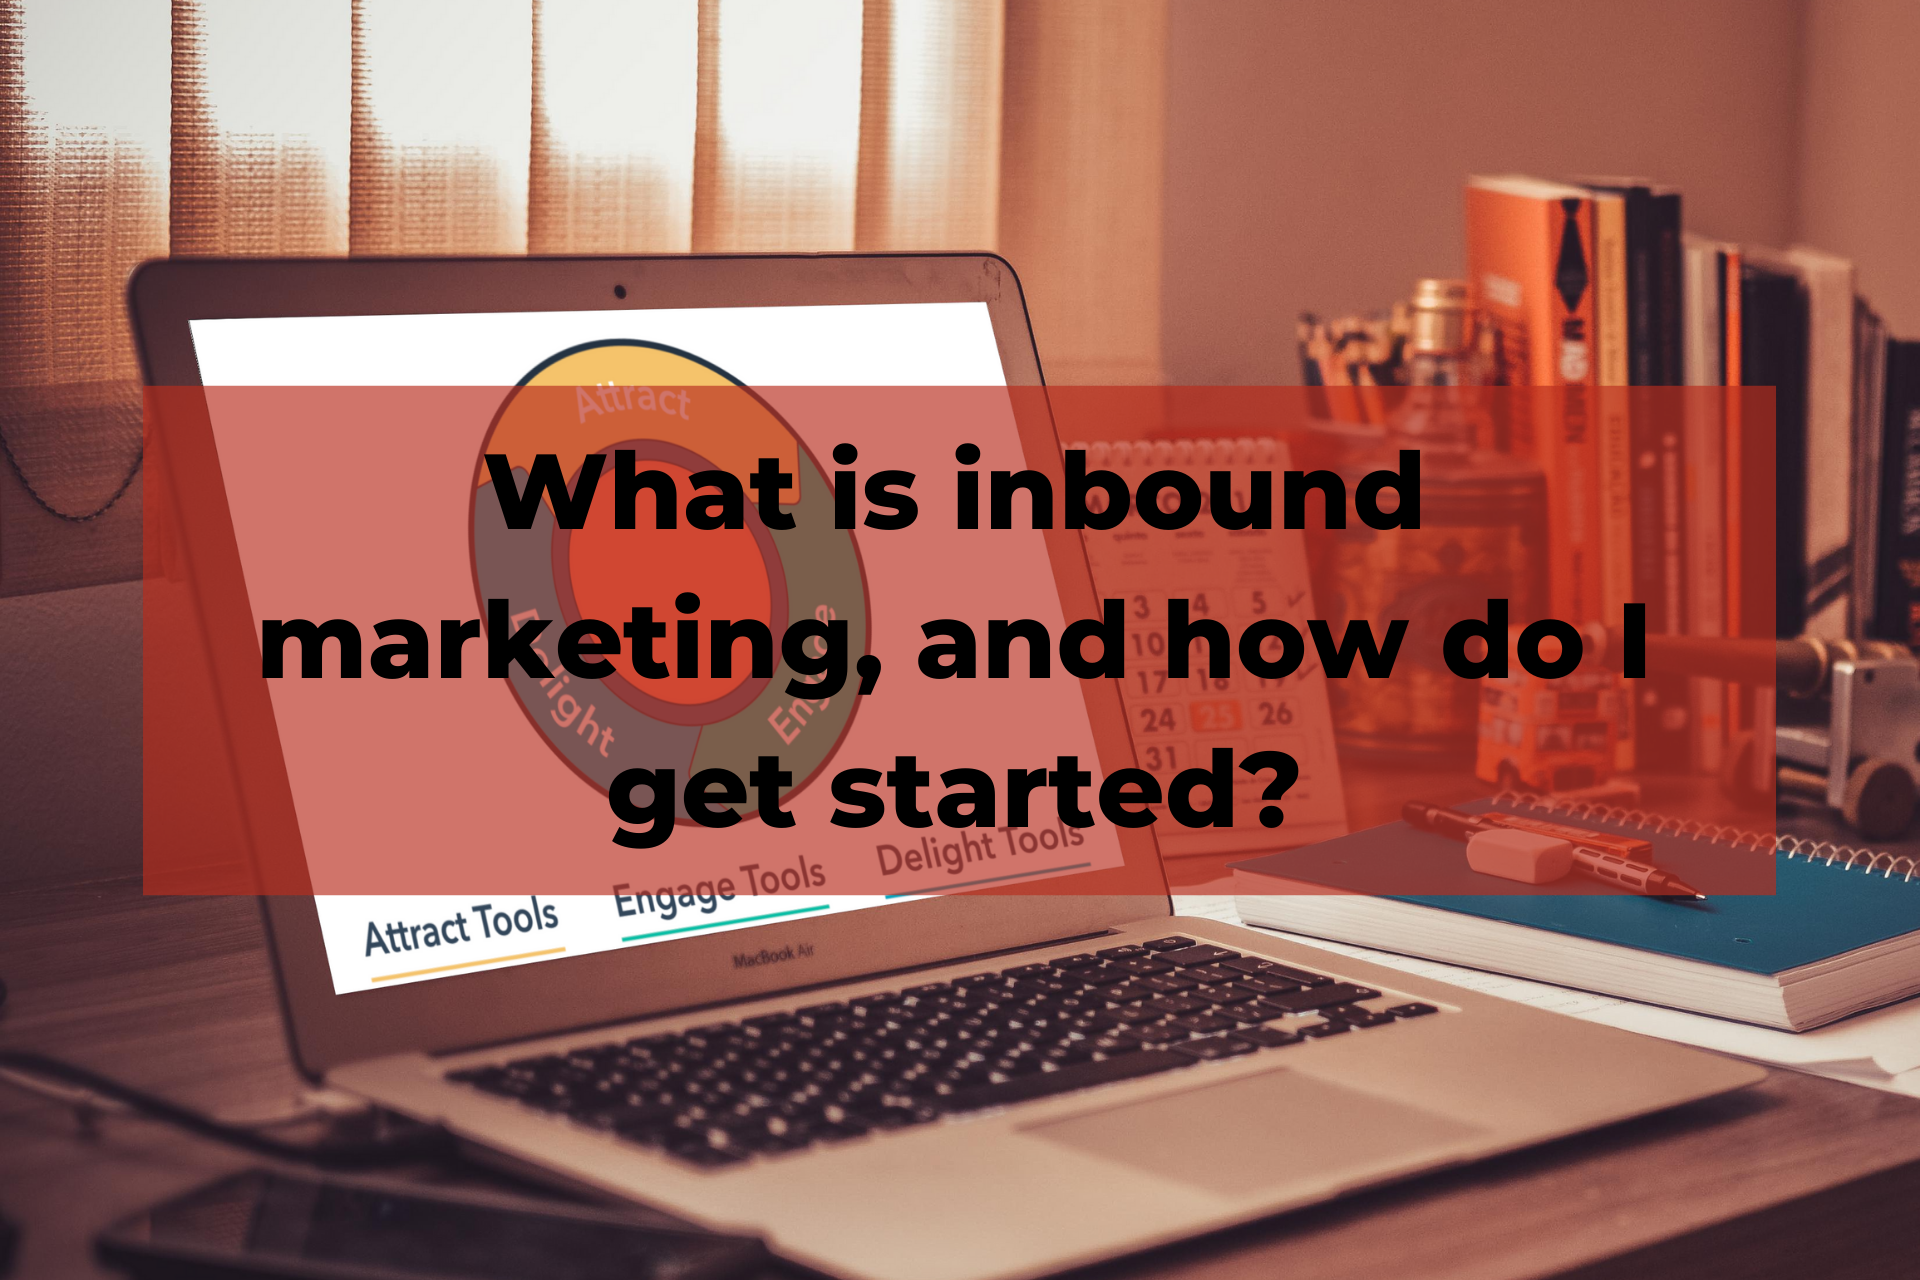 What is inbound marketing, and how does my business get started?